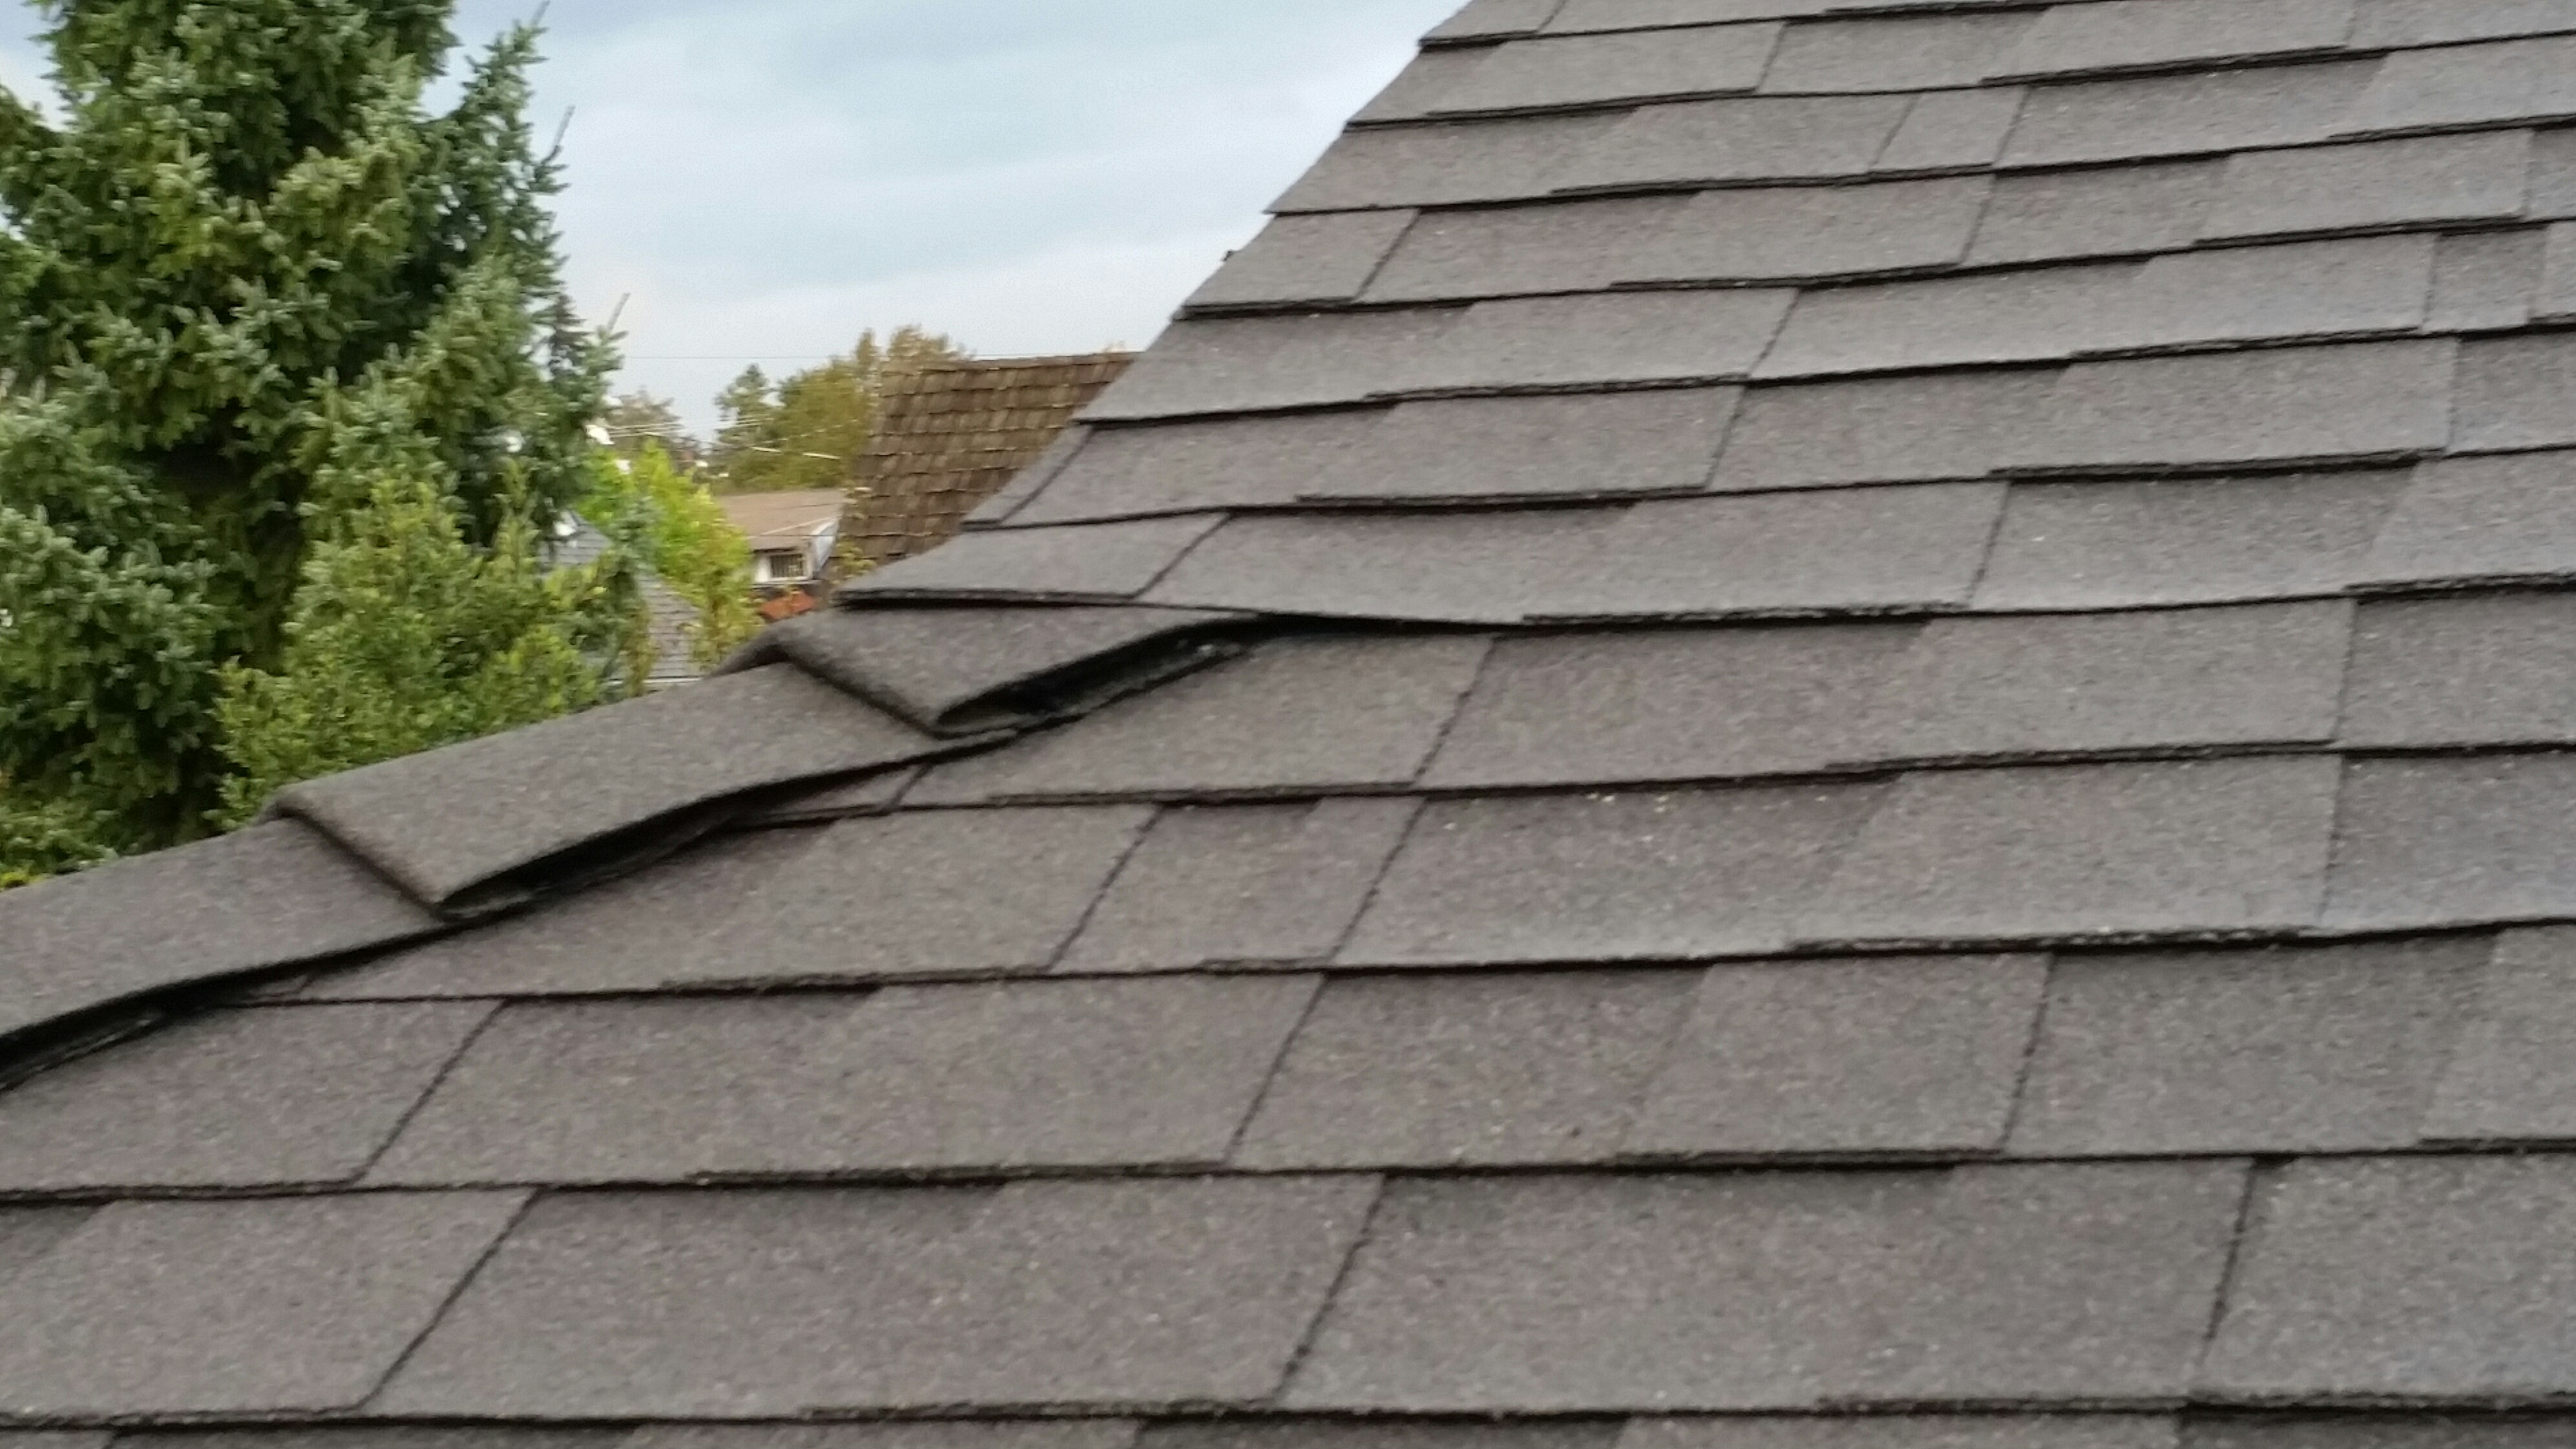 Hip Roof Shingle Placement - Roofing - Contractor Talk